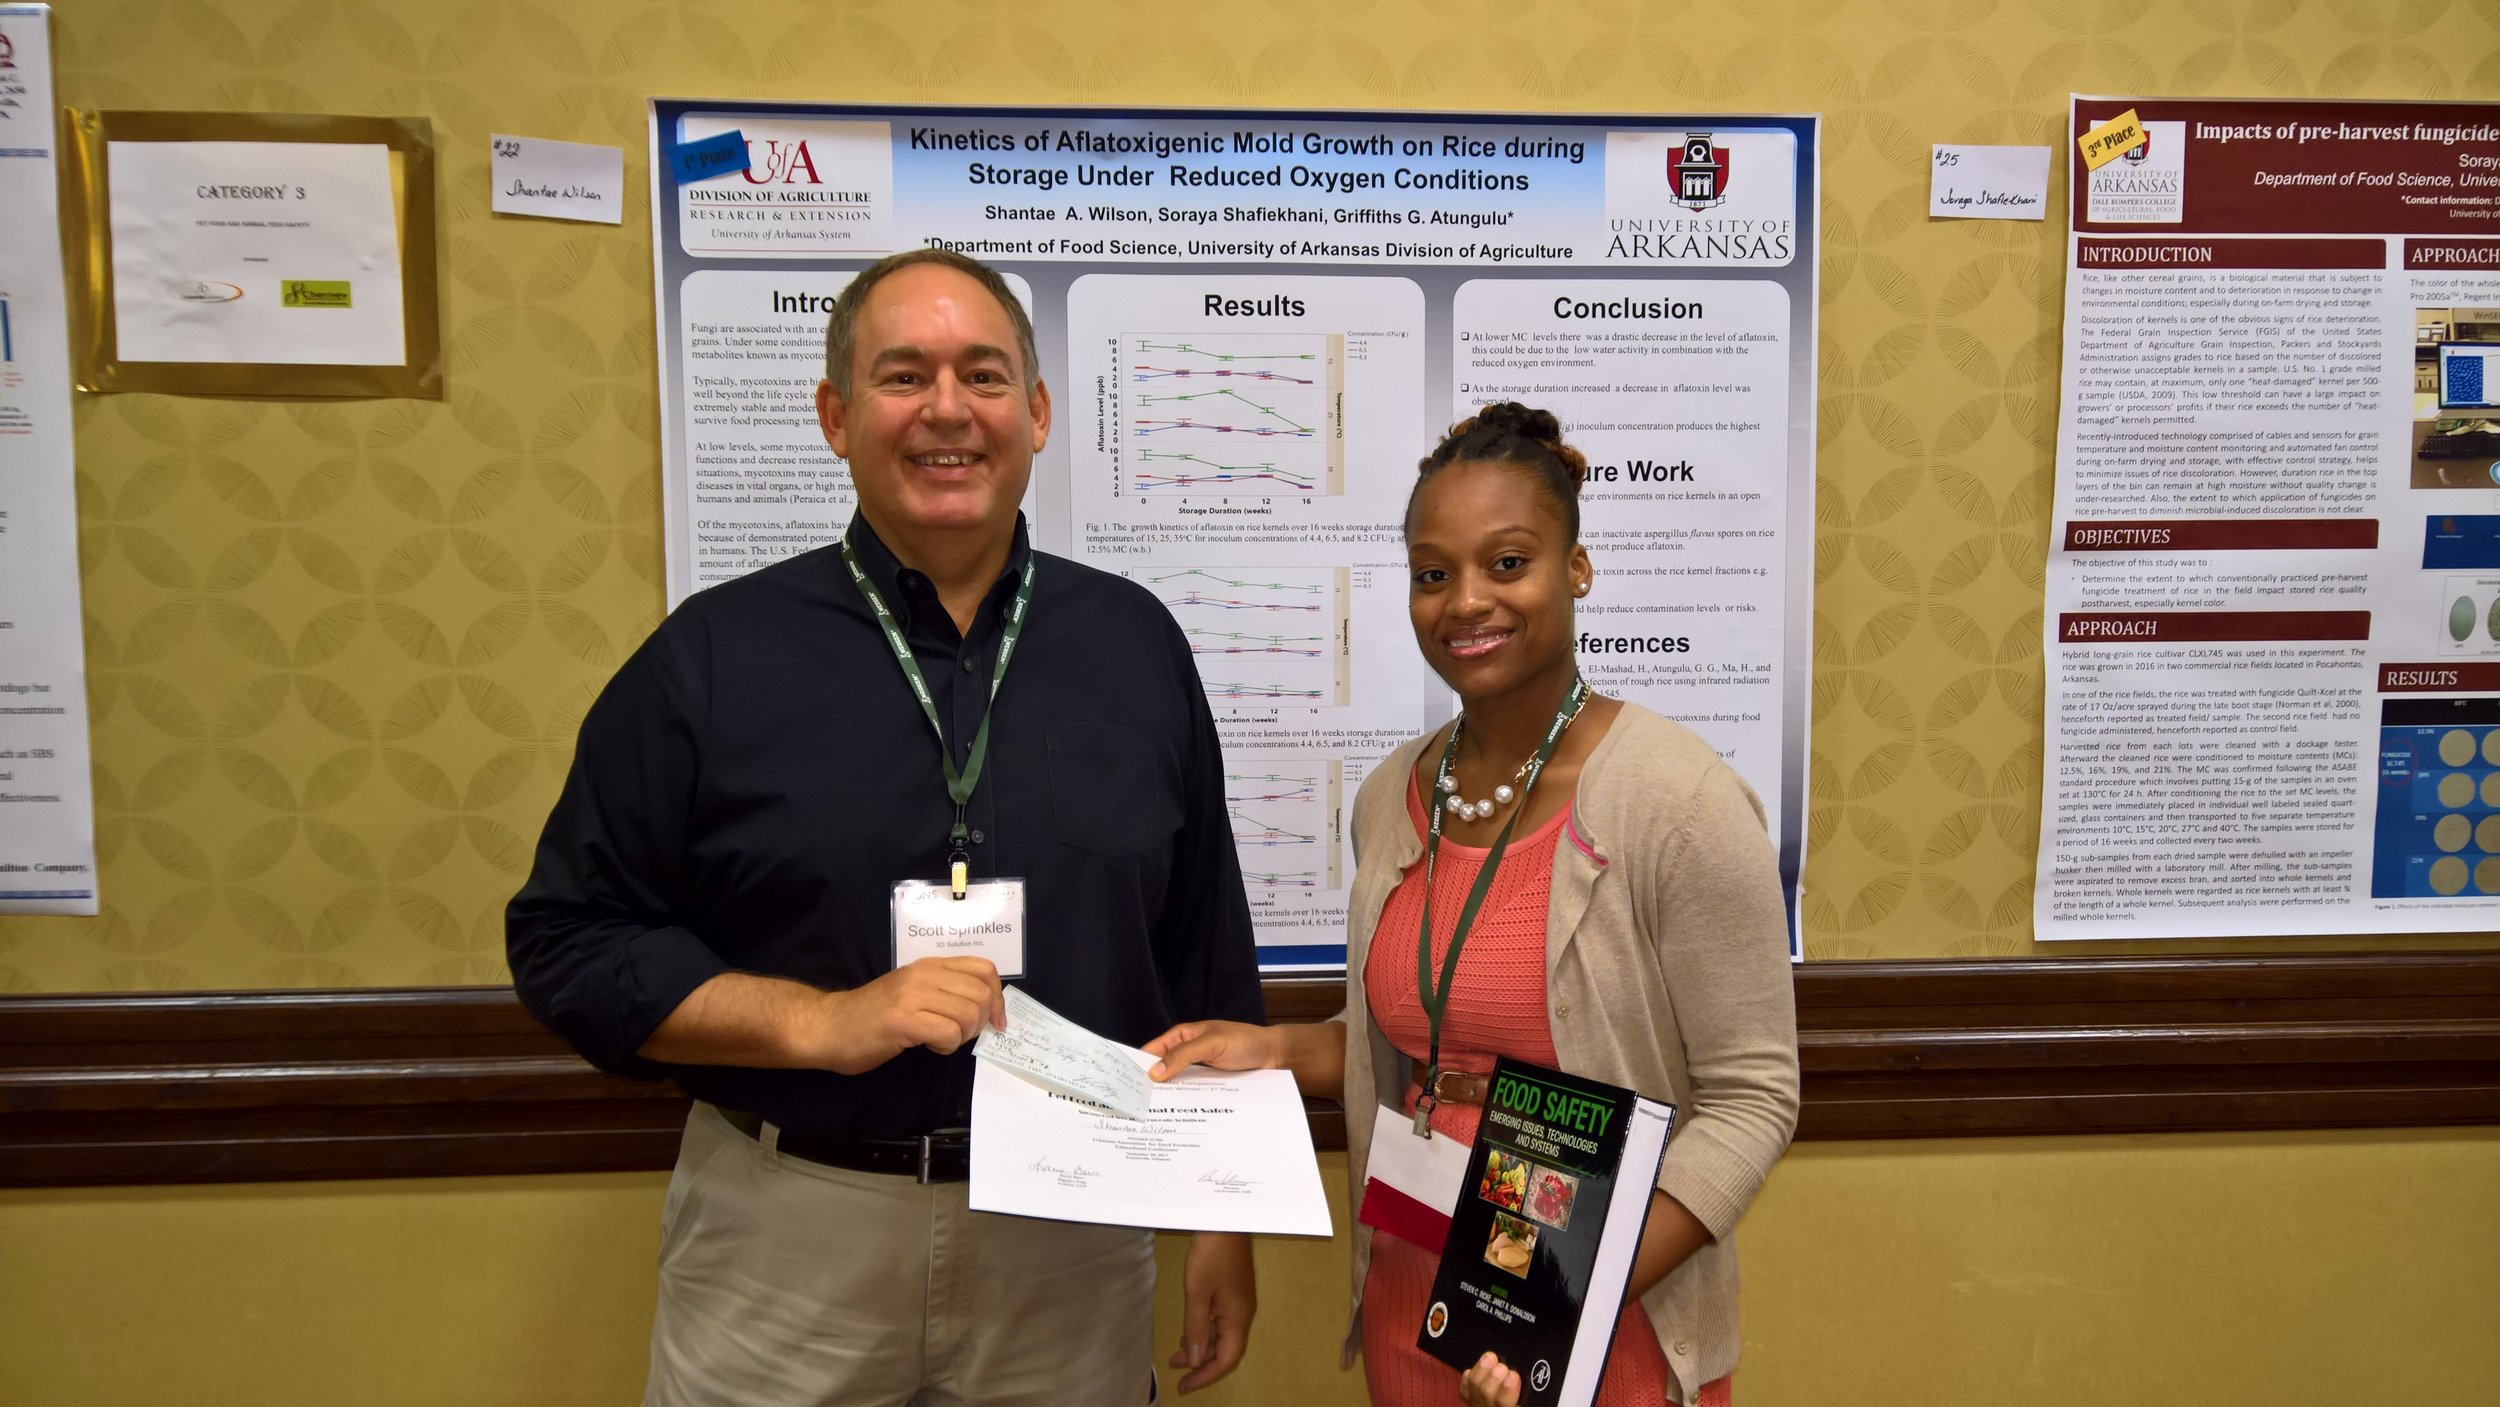 Shantae Wilson - University of Arkansas1st place Pet Food and Animal Feed Safety